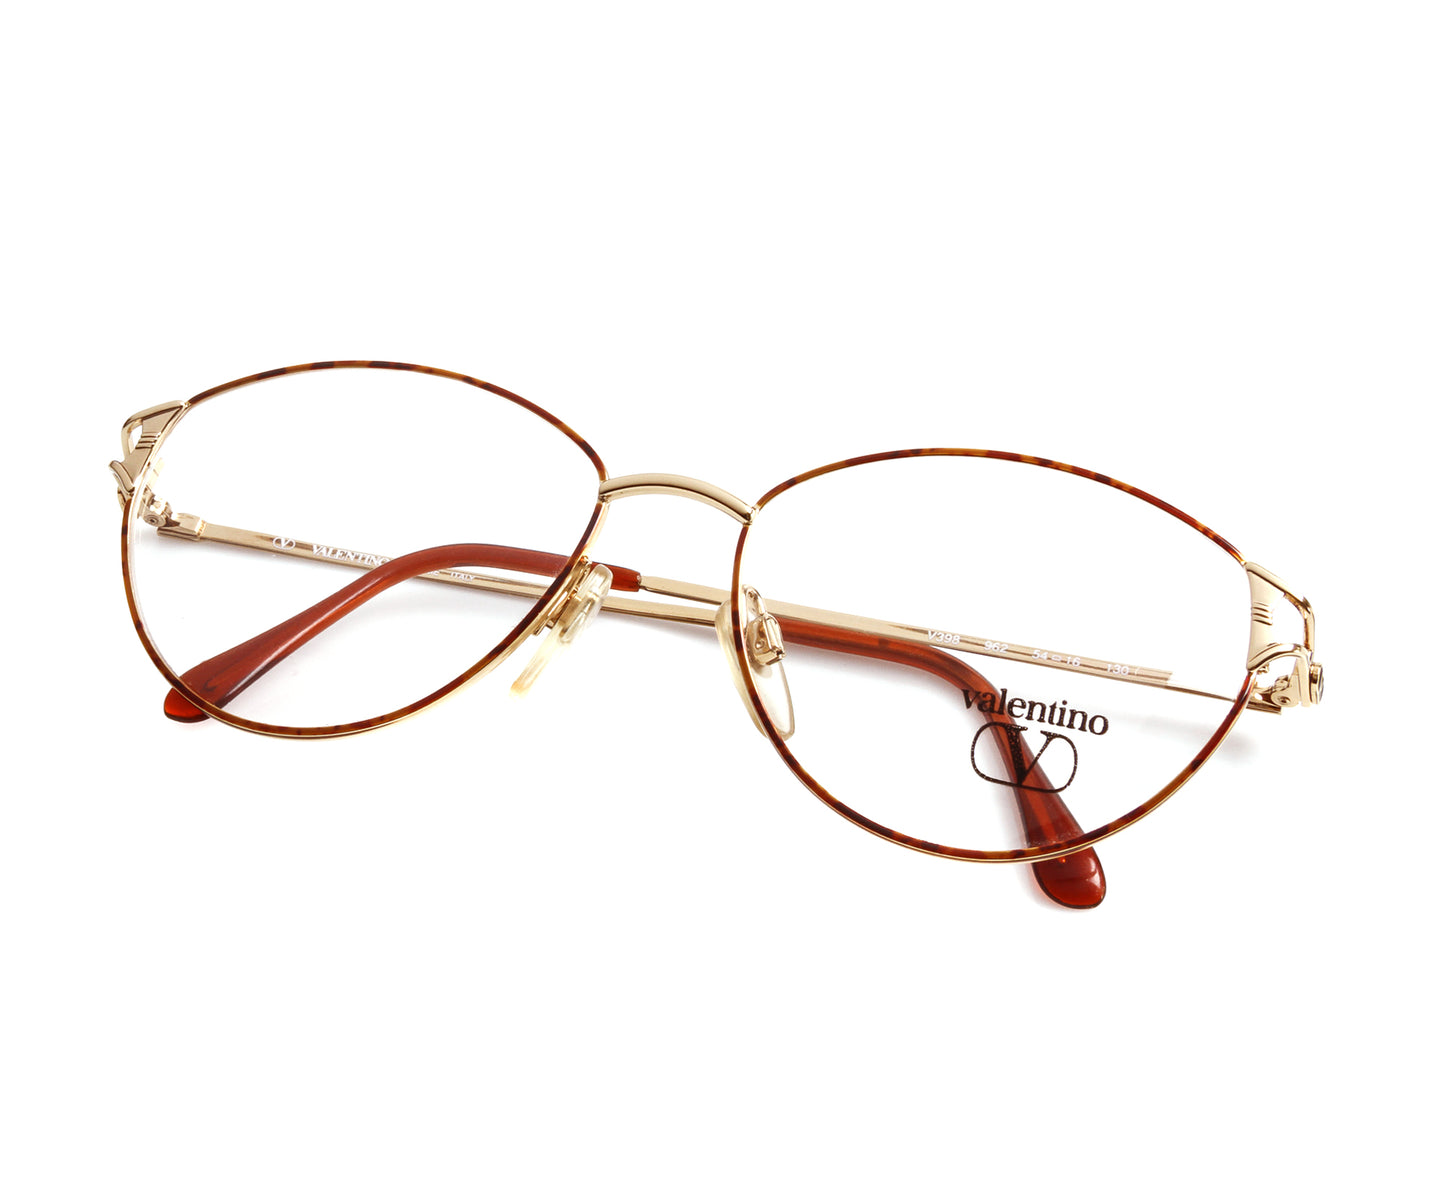 Valentino V398 962 Thumb, Valentino , glasses frames, eyeglasses online, eyeglass frames, mens glasses, womens glasses, buy glasses online, designer eyeglasses, vintage sunglasses, retro sunglasses, vintage glasses, sunglass, eyeglass, glasses, lens, vintage frames company, vf